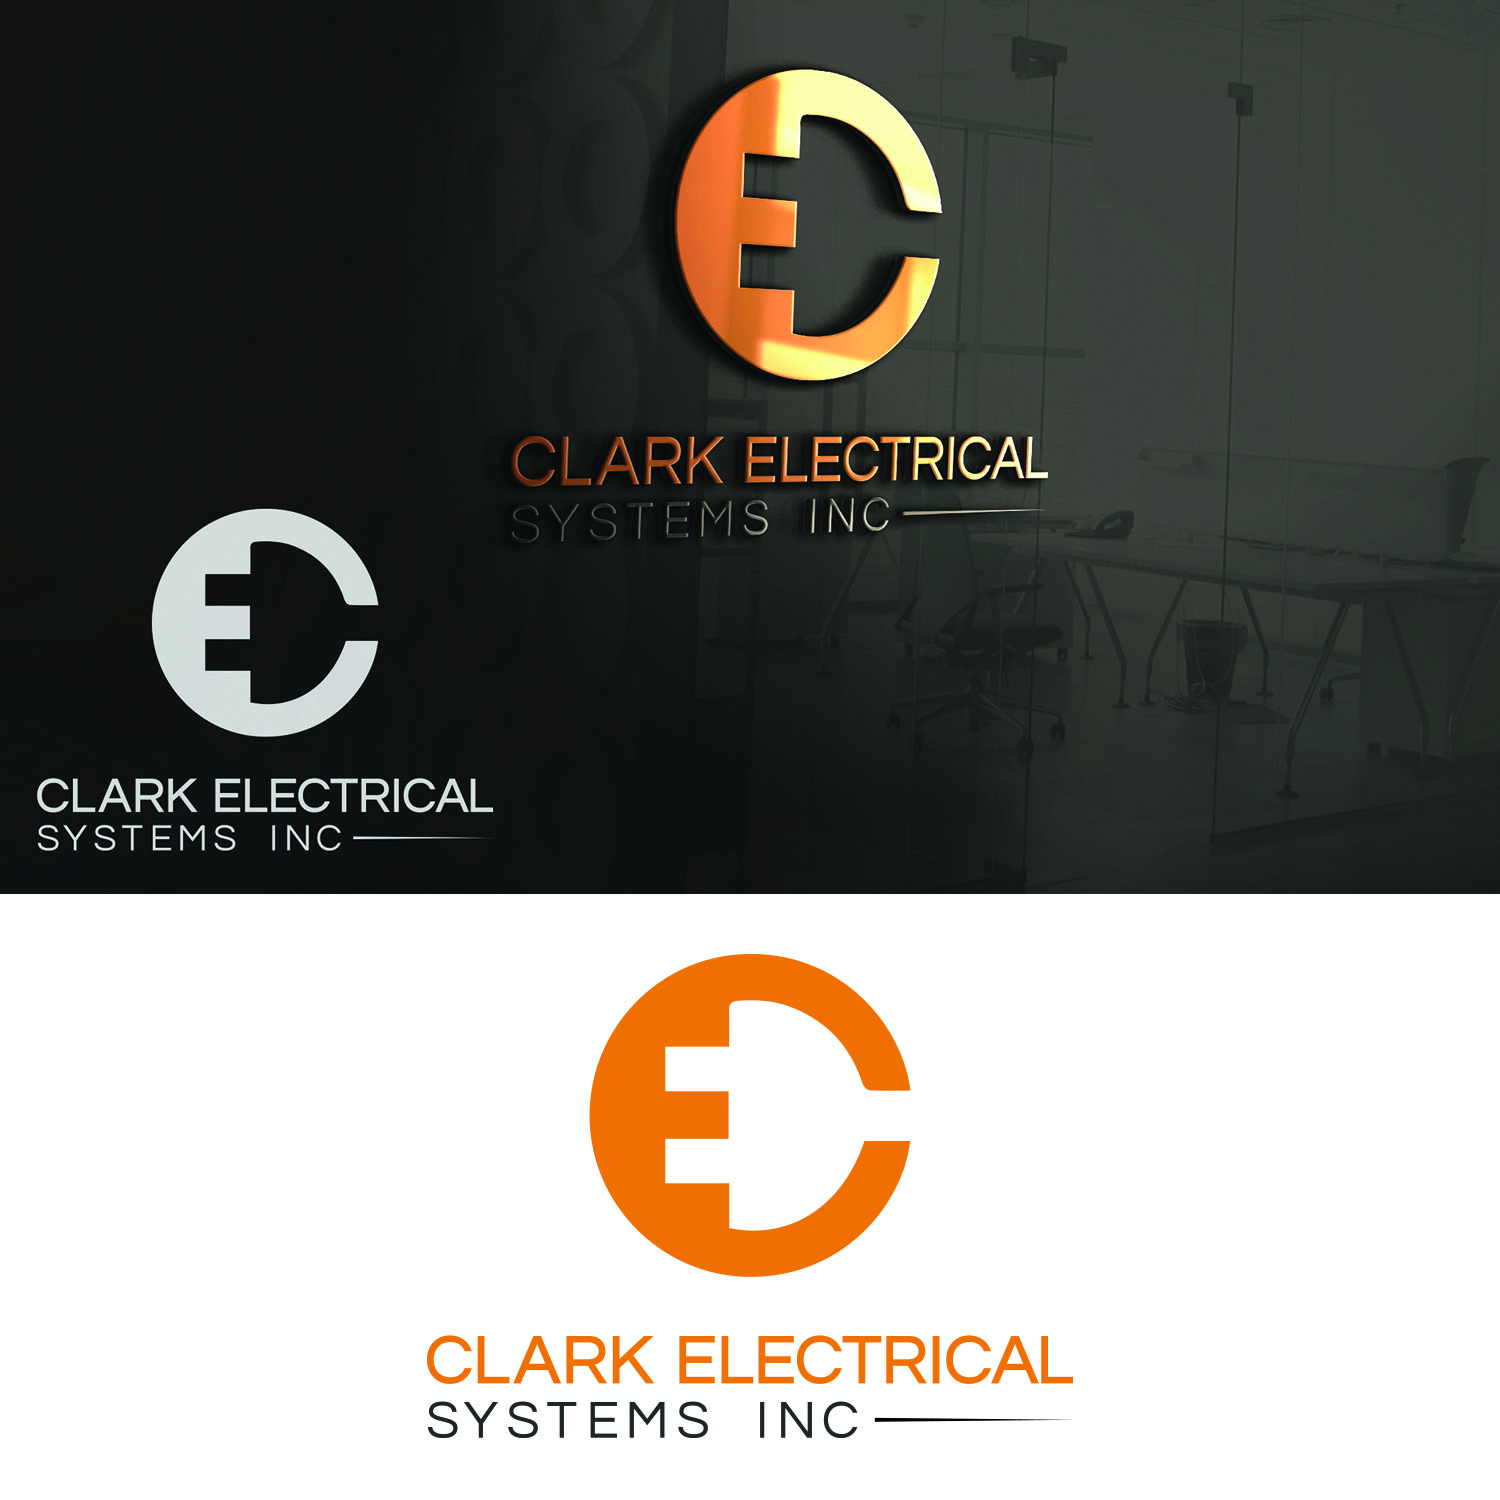 Logo Design by Umair ahmed Iqbal - Entry No. 245 in the Logo Design Contest Artistic Logo Design for Clark Electrical Systems Inc..